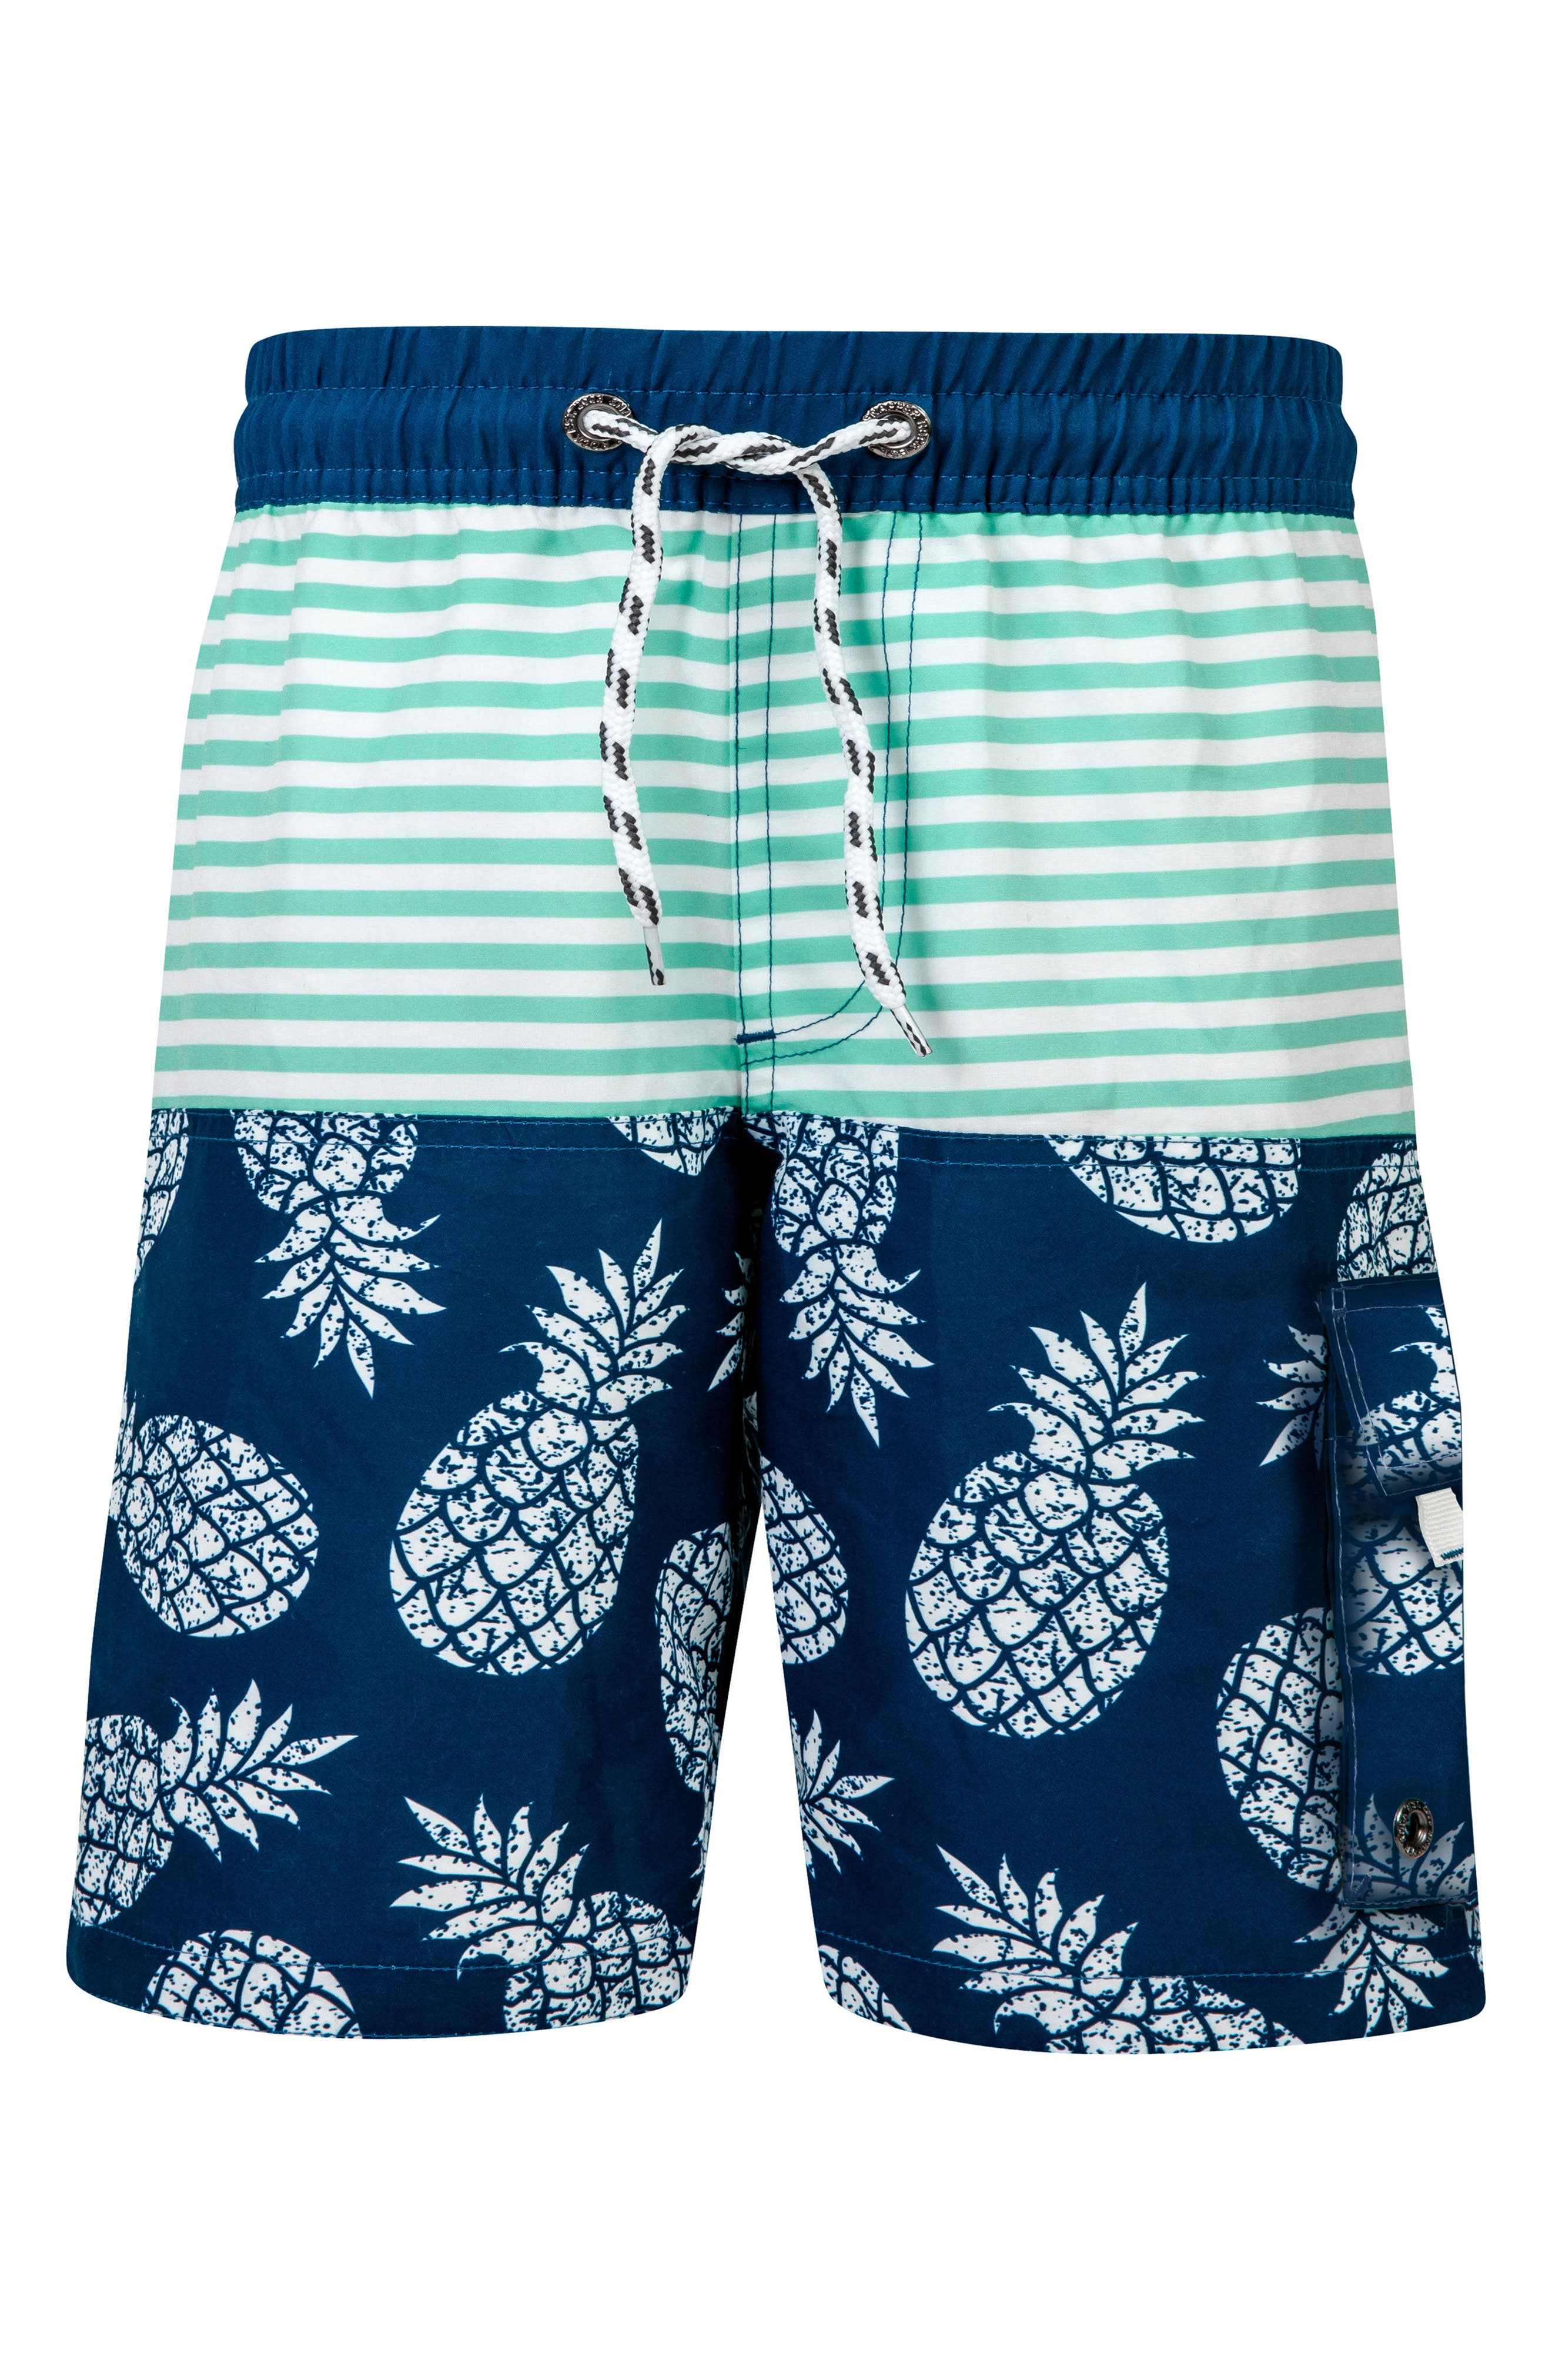 Pineapple Mint Stripe Board Shorts,                             Main thumbnail 1, color,                             DENIM/ MINT/ WHITE